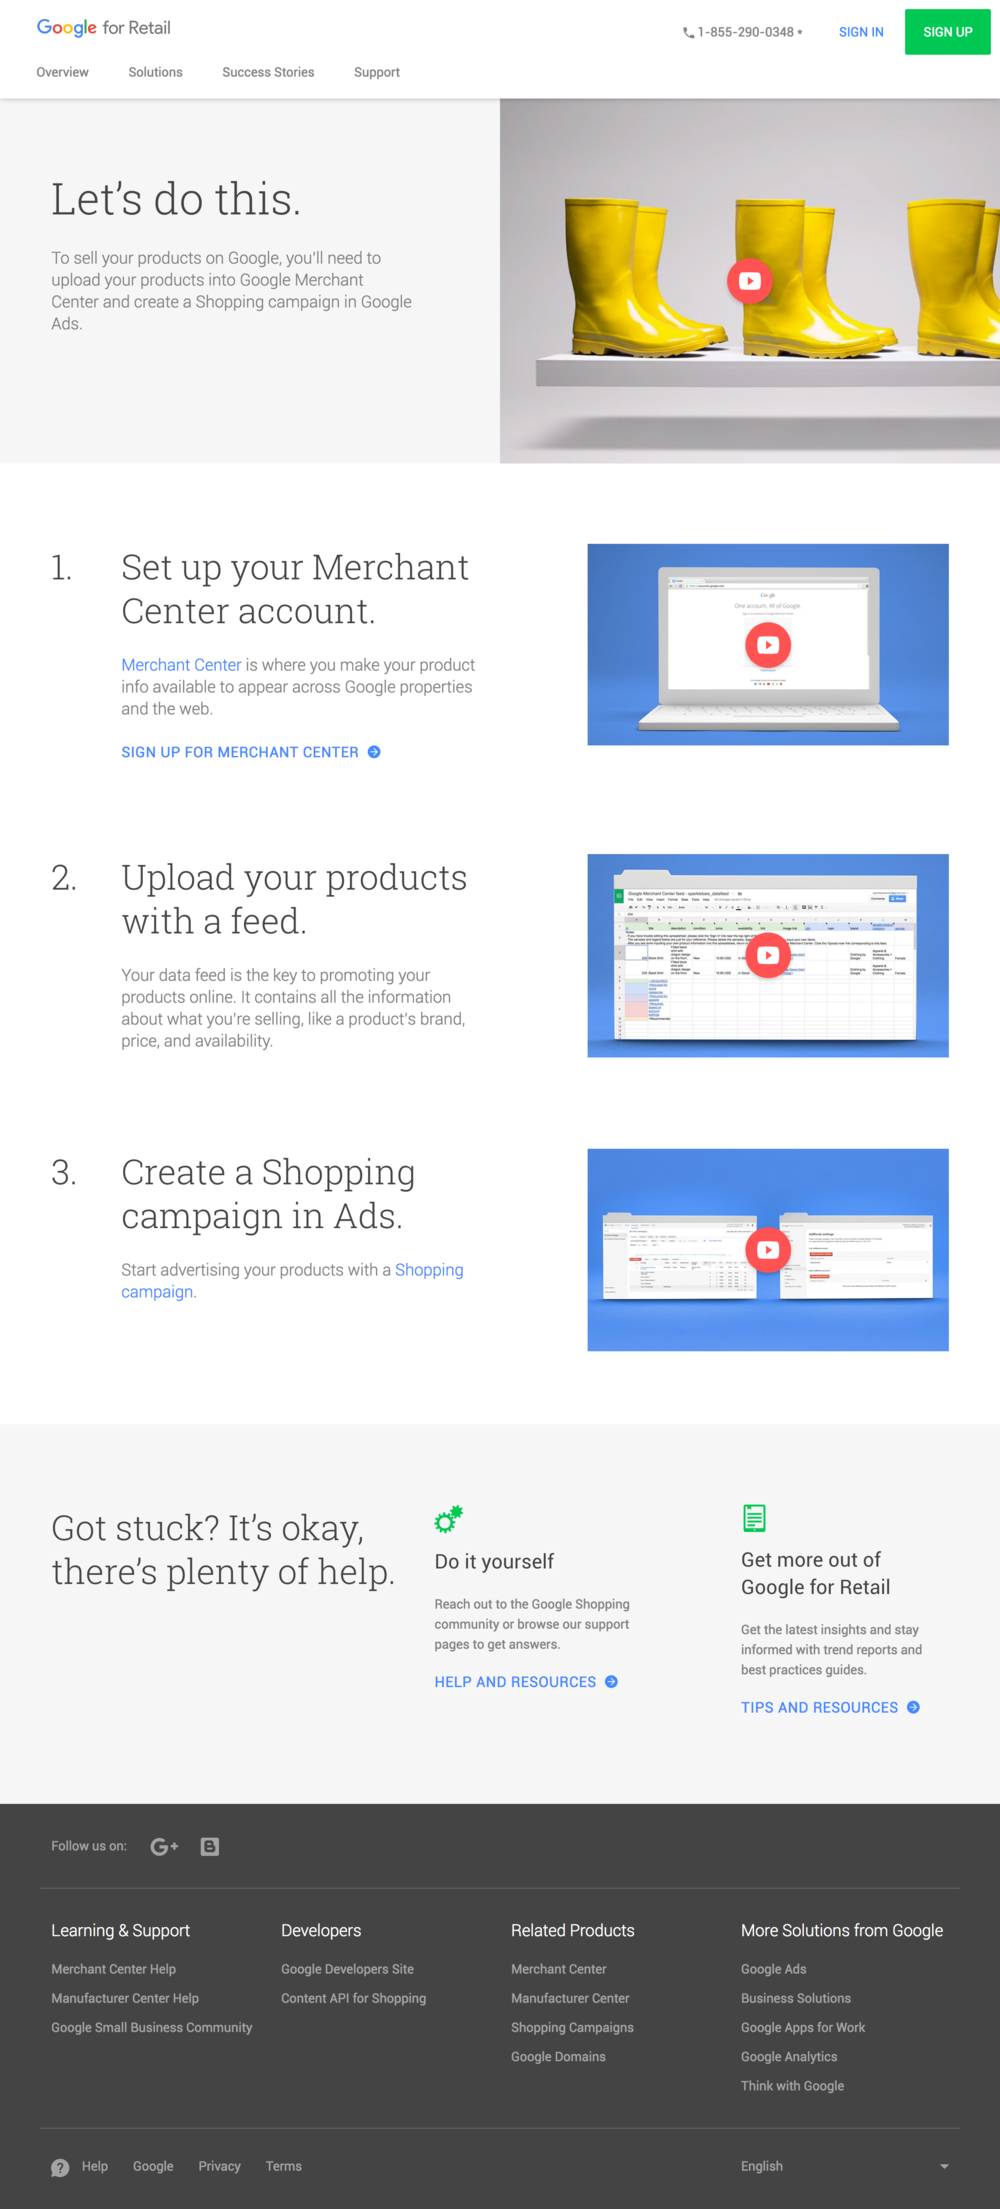 screencapture-google-retail-get-started-2018-10-12-16_10_26 (1).png